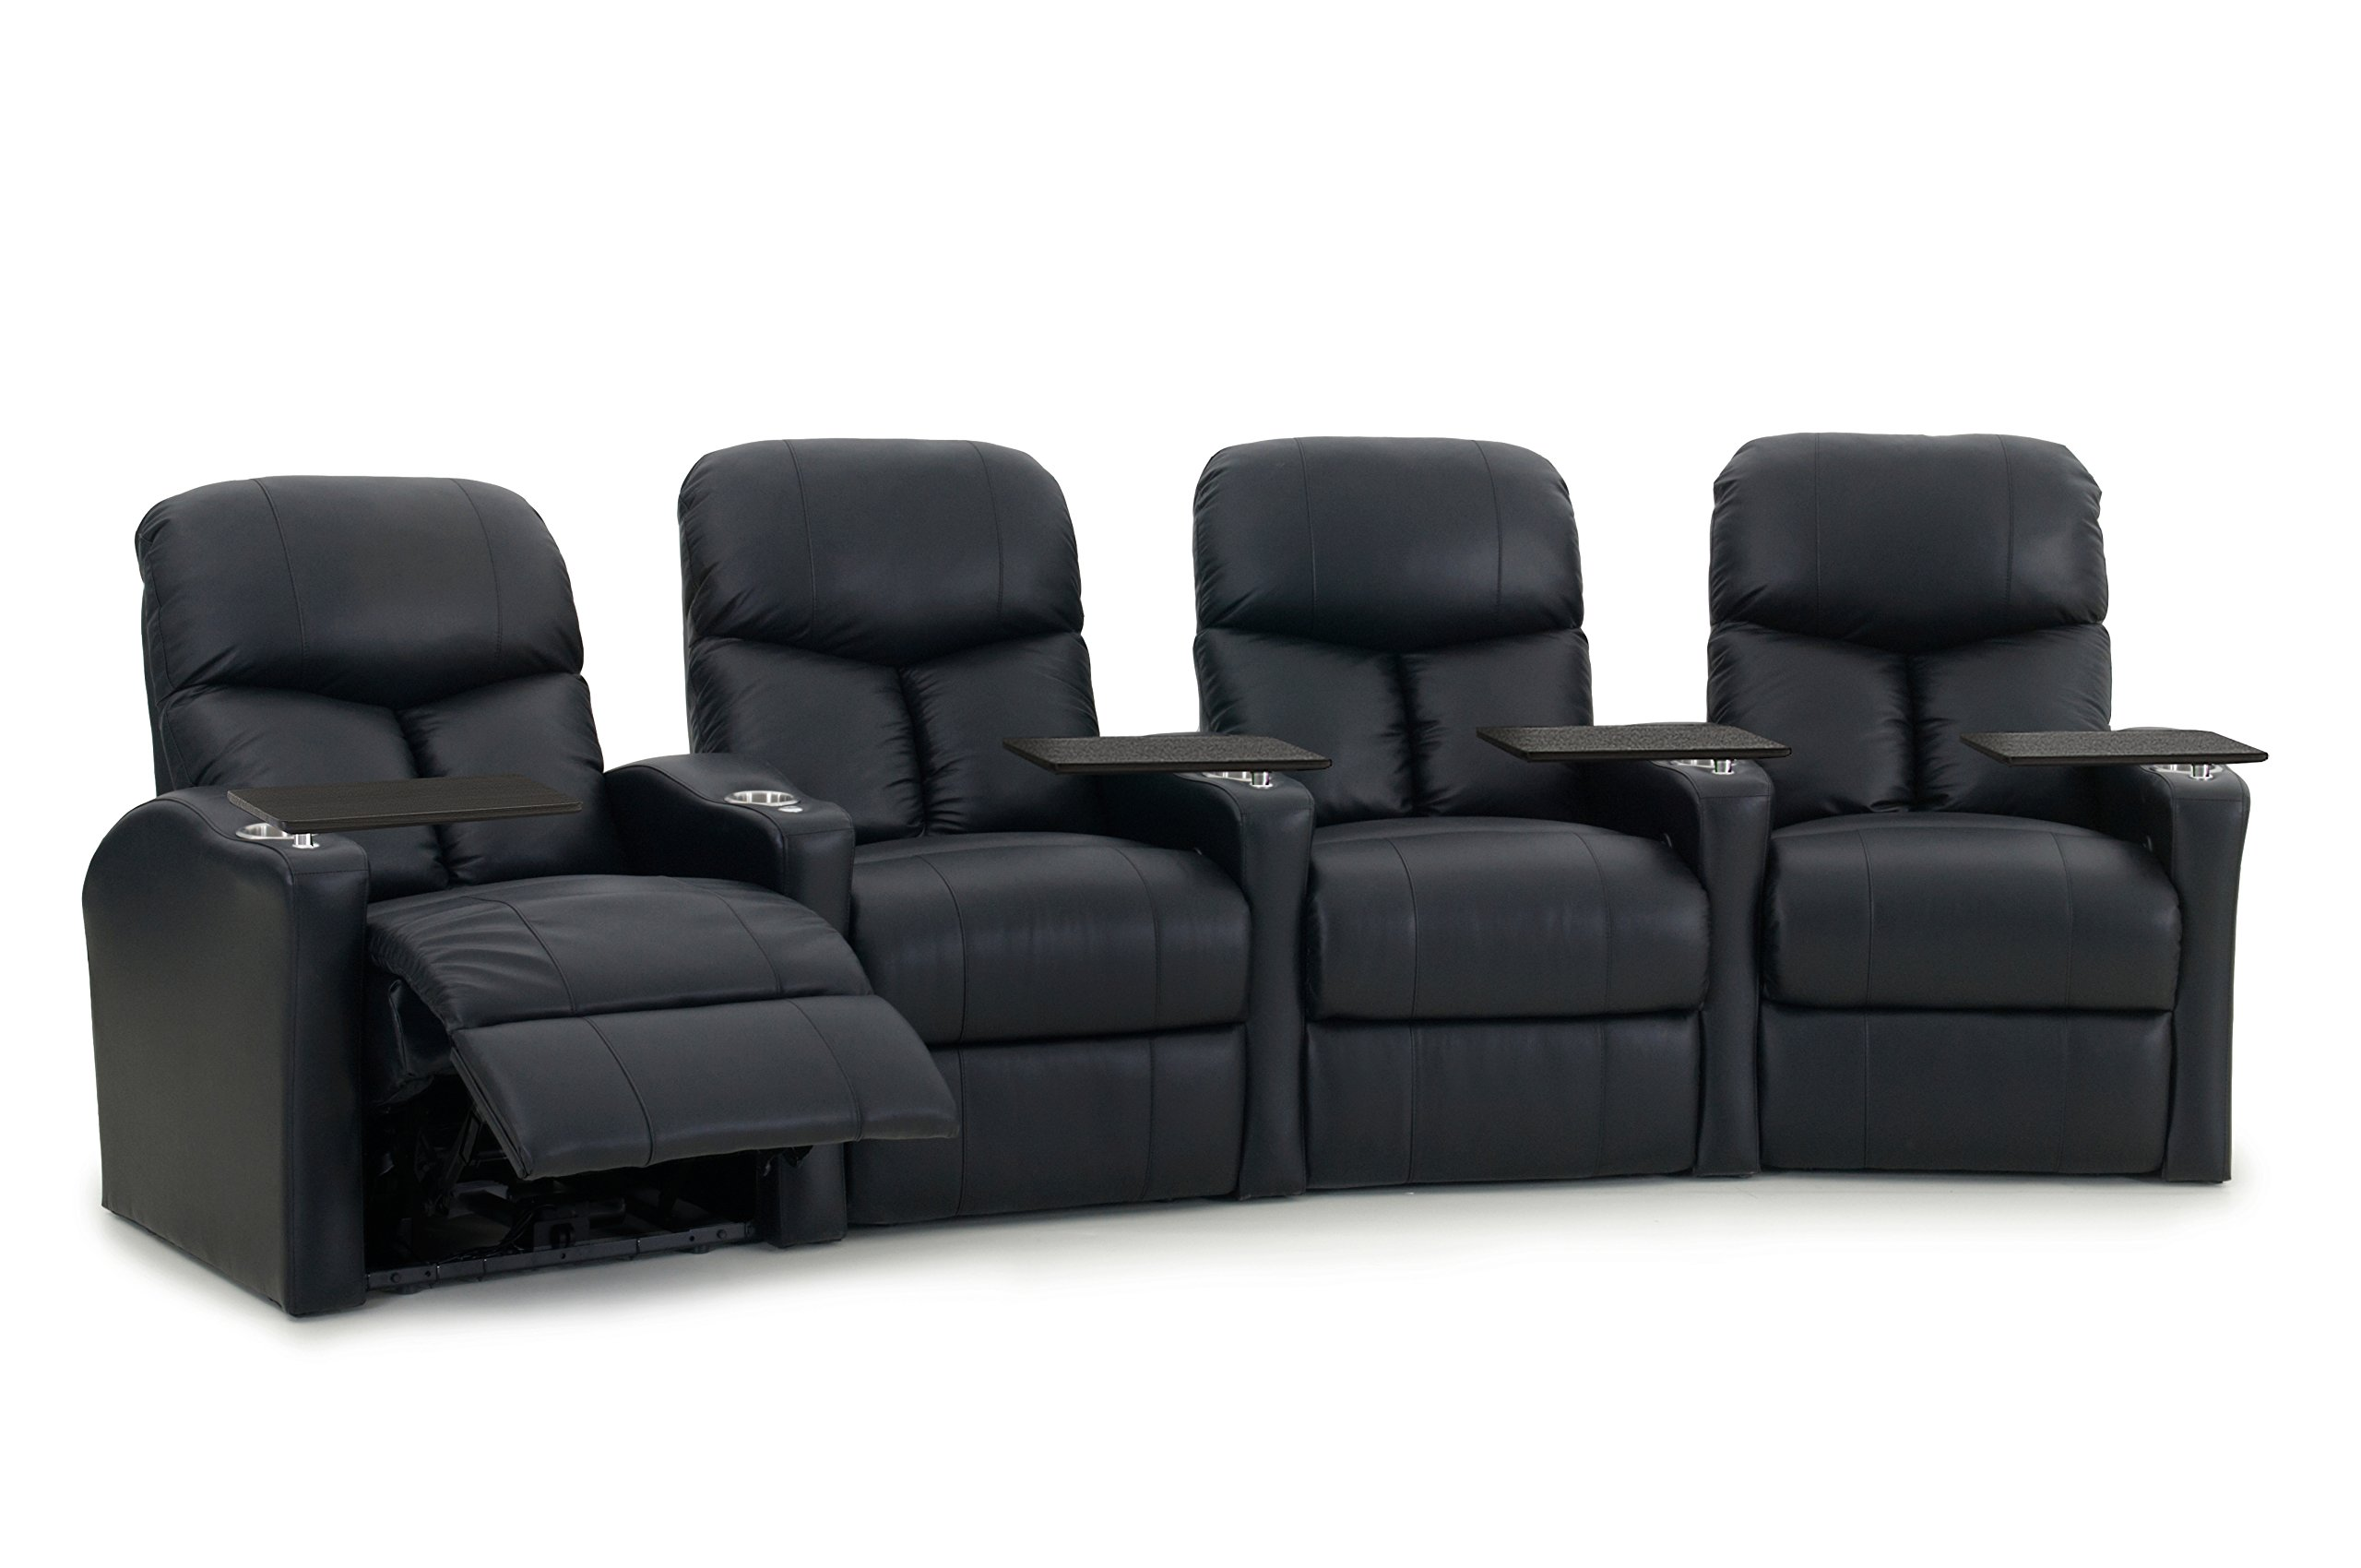 Octane Seating Octane Bolt XS400 Motorized Leather Home Theater Recliner Set (Row of 4) by Octane Seating